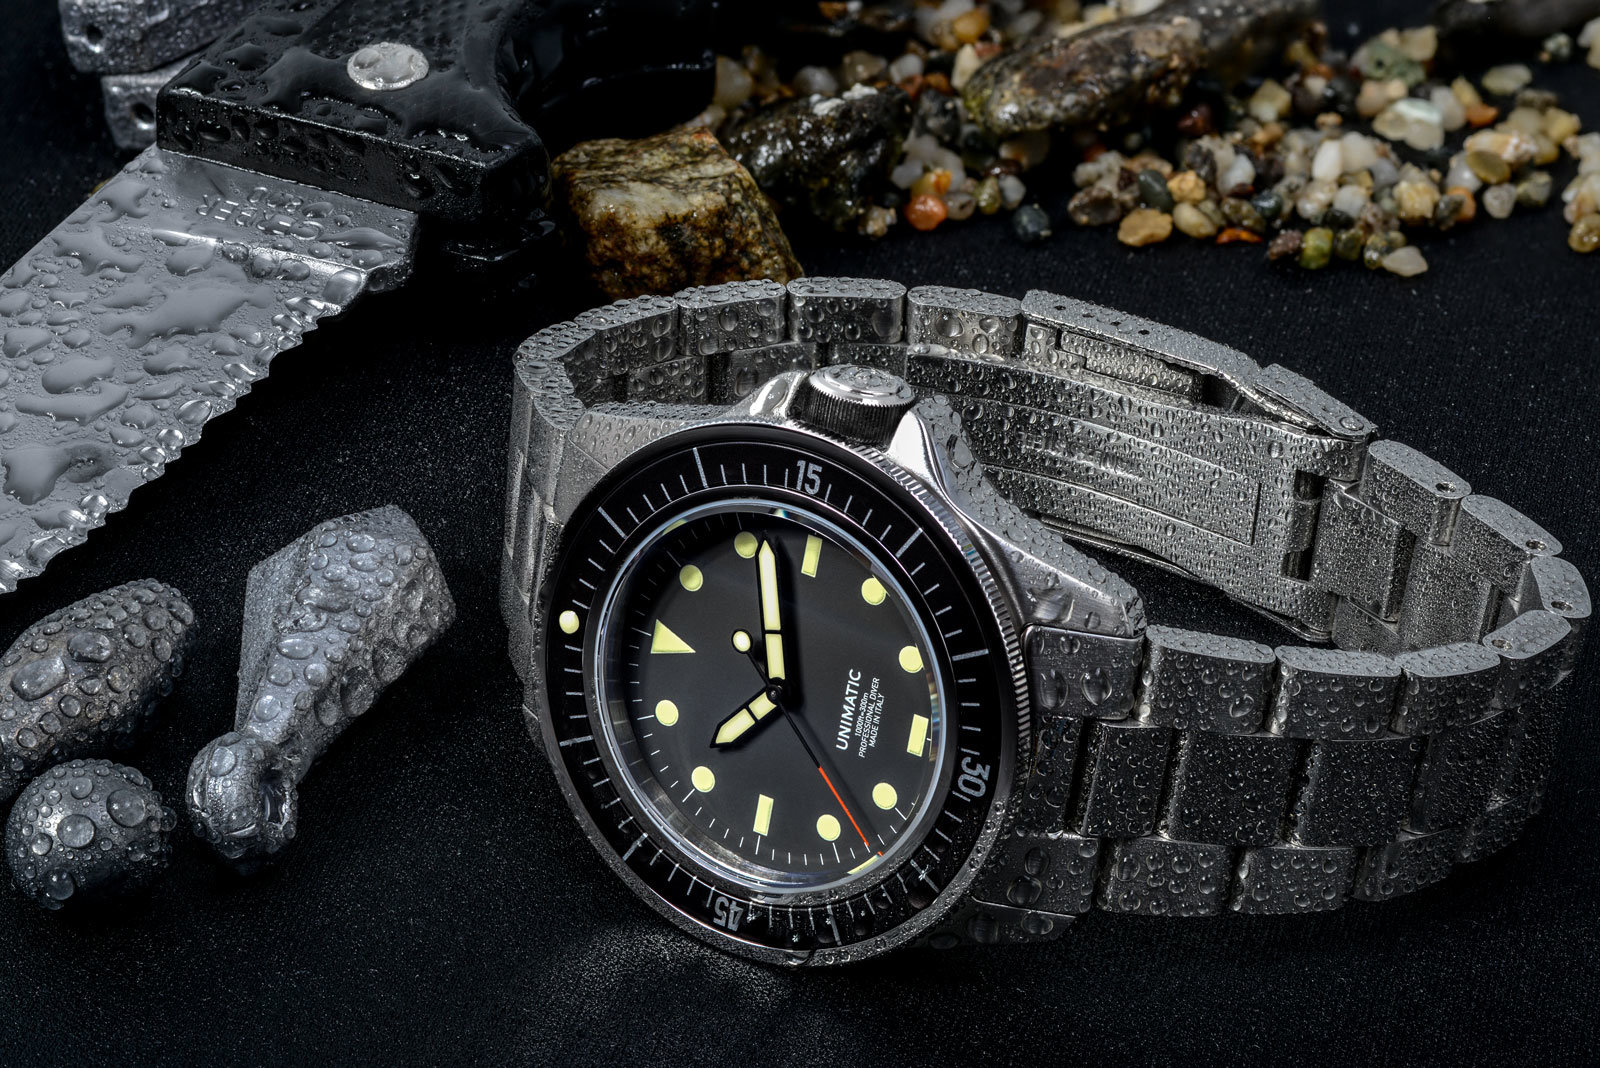 The Modello Uno Professional Dive Watch by Unimatic